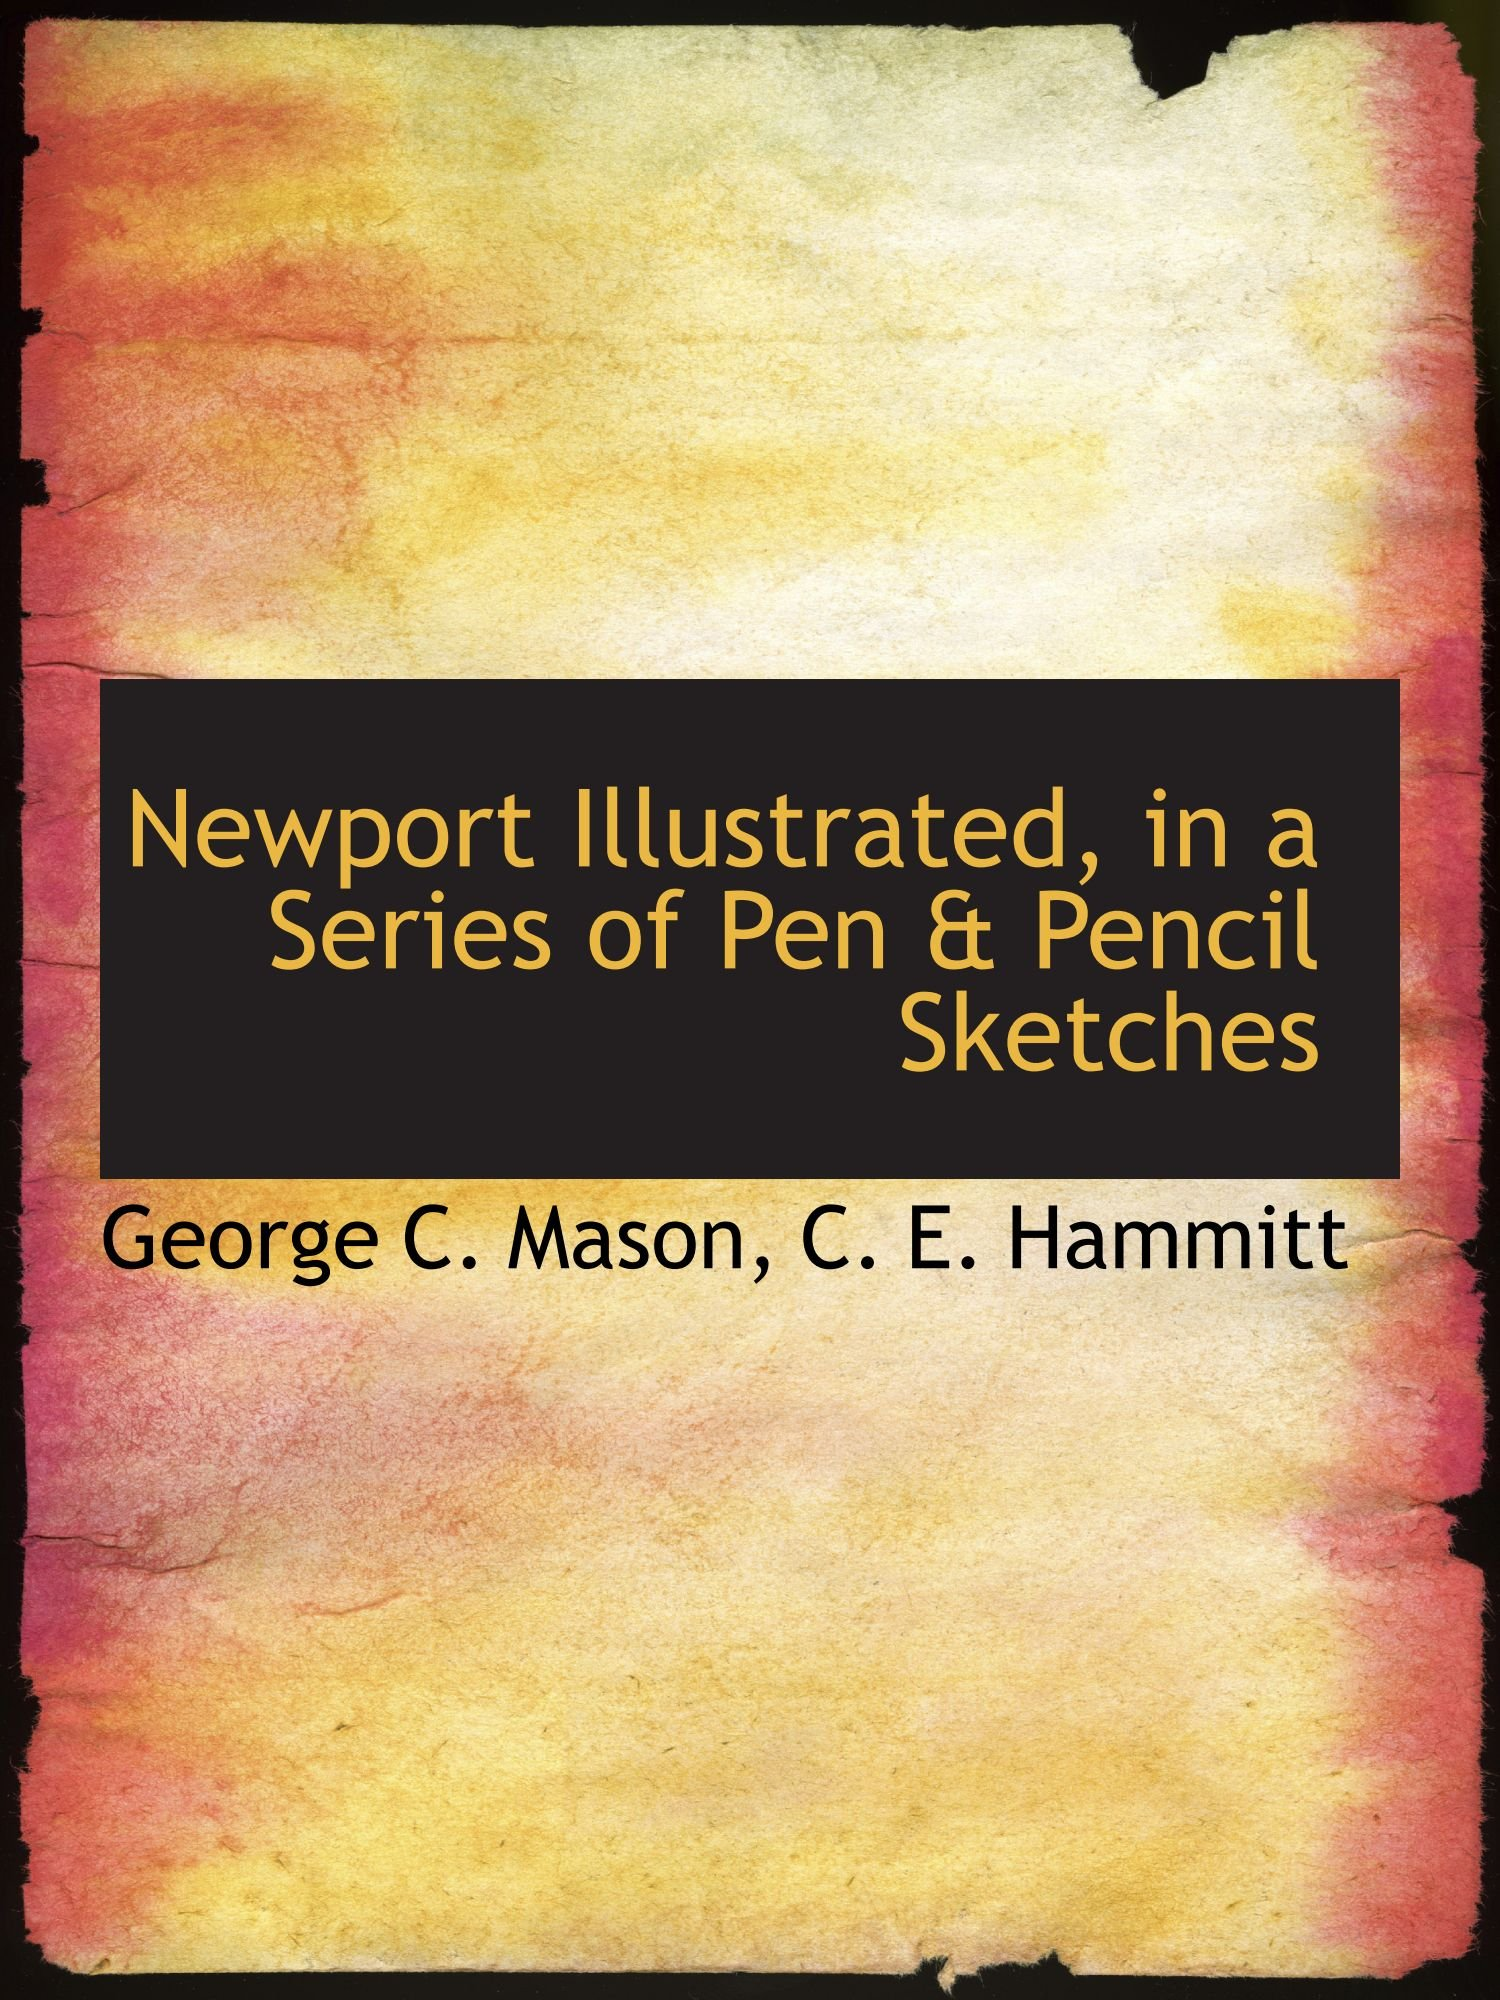 Download Newport Illustrated, in a Series of Pen & Pencil Sketches Text fb2 book